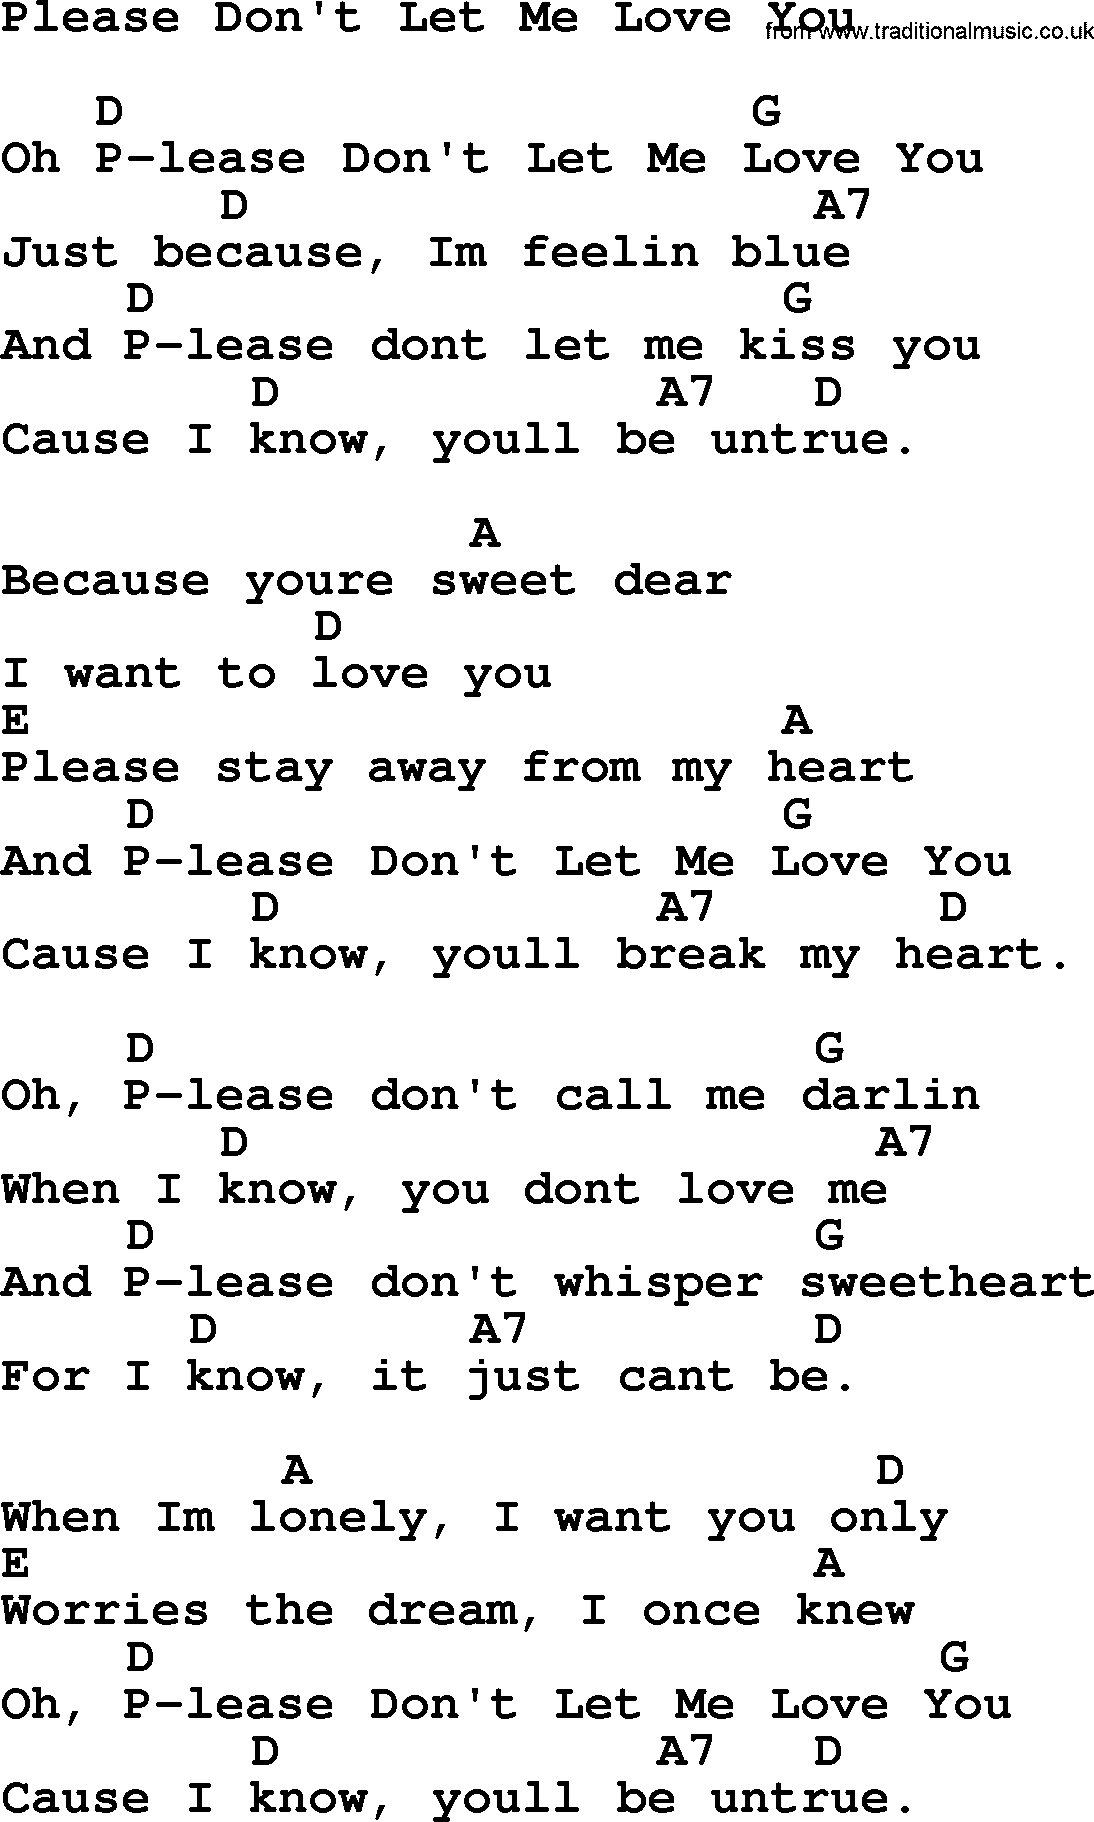 Hank williams song please dont let me love you lyrics and chords hank williams song please dont let me love you lyrics and chords hexwebz Images